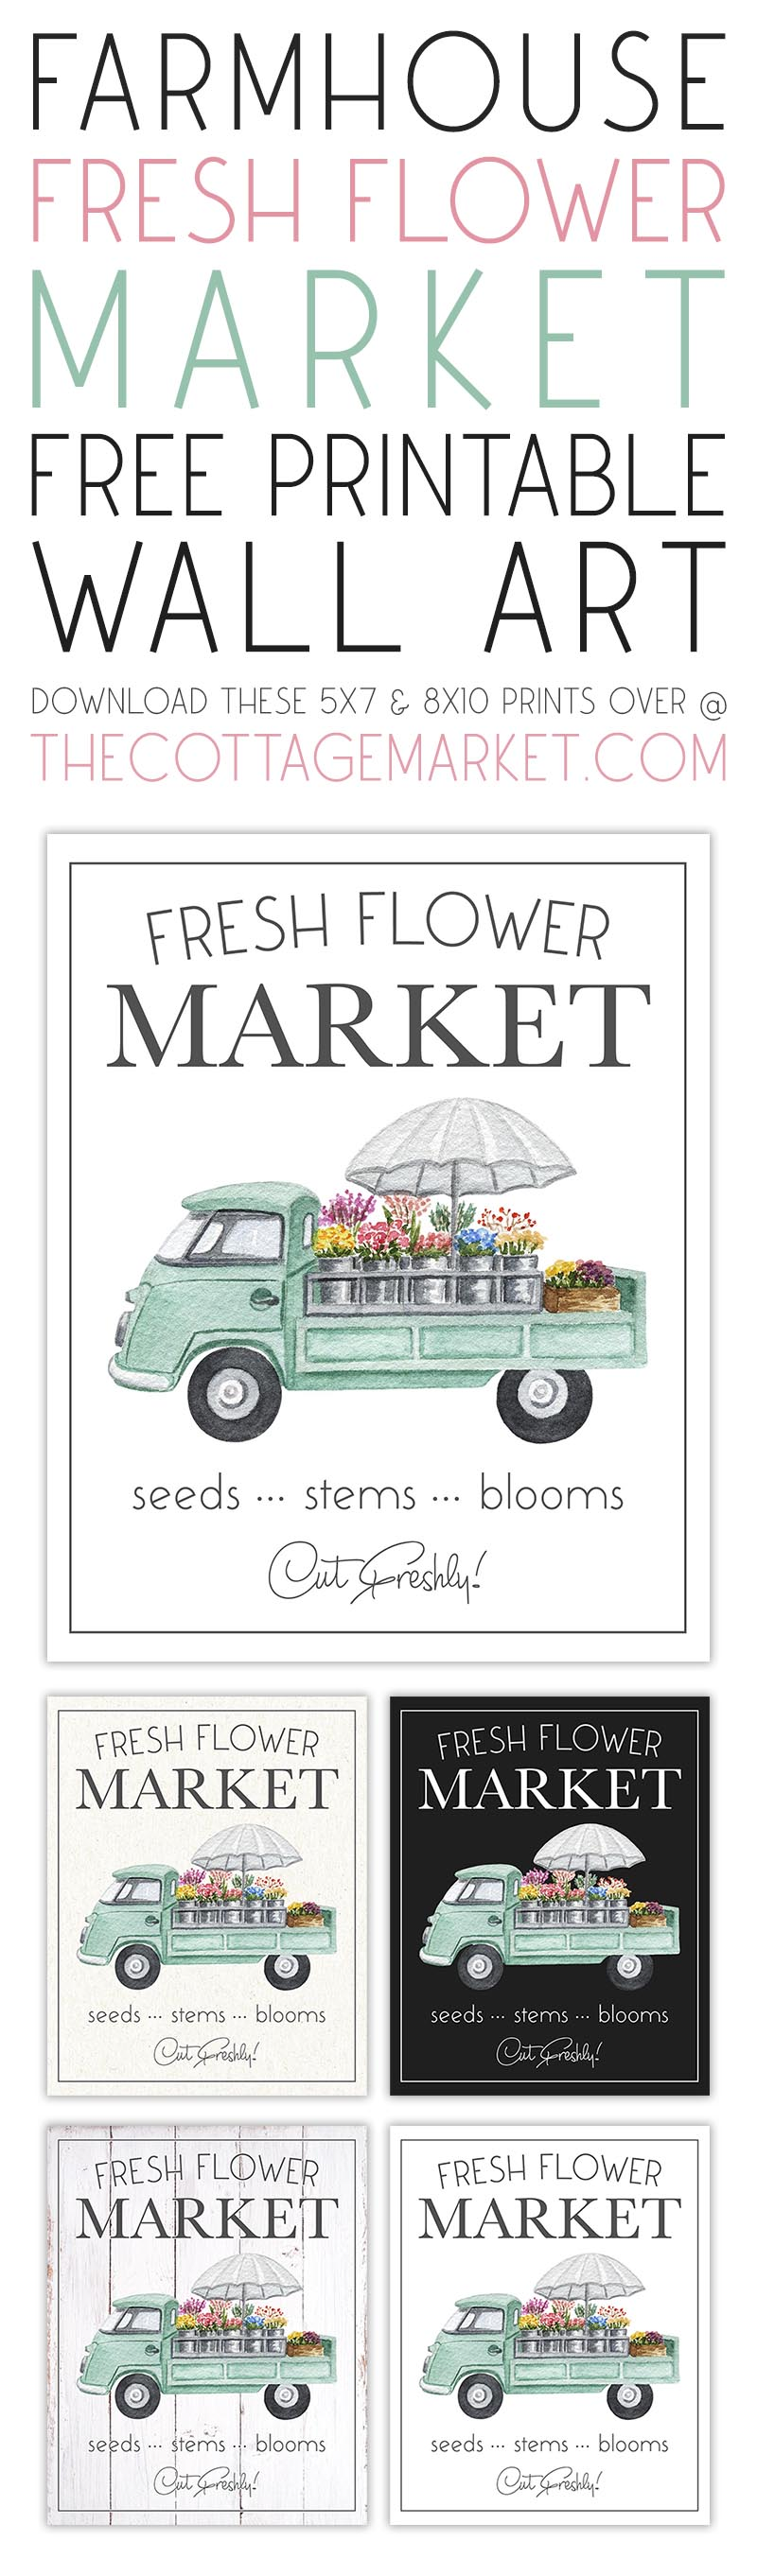 This Farmhouse Fresh Flower Market Free Printable Wall Art is just what your walls... gallery wall... vignette and more need for a blast of Spring Air!!!